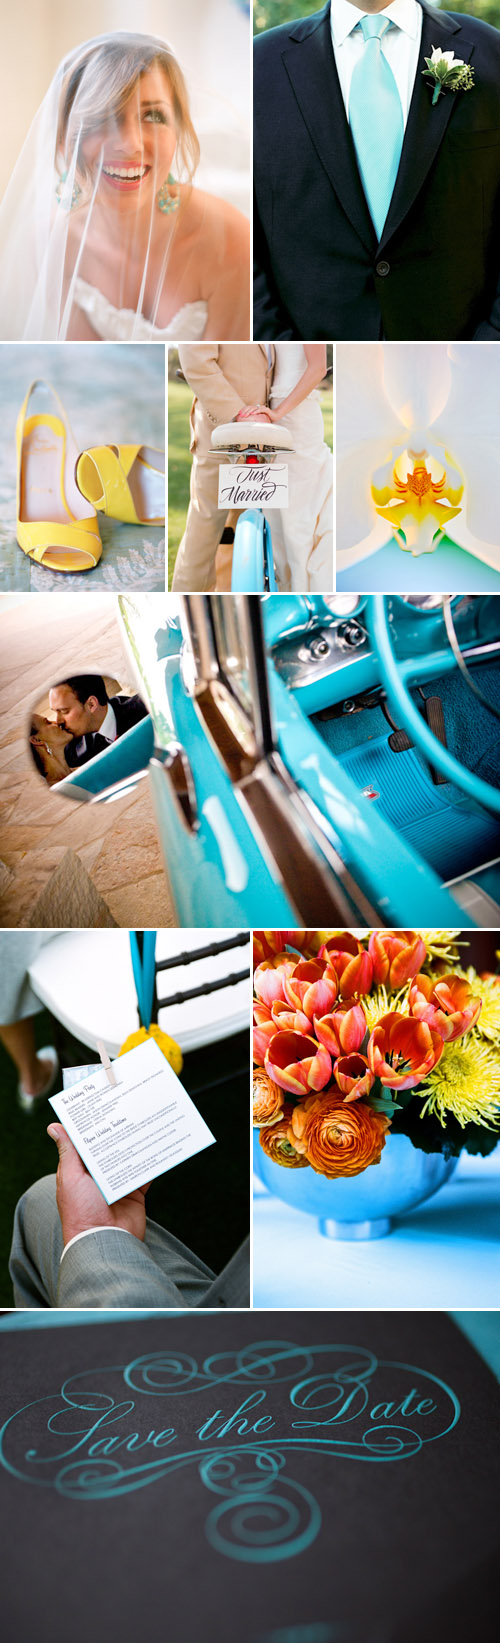 aqua blue and yellow wedding color palette inspiration board with photos from the junebug weddings image gallery